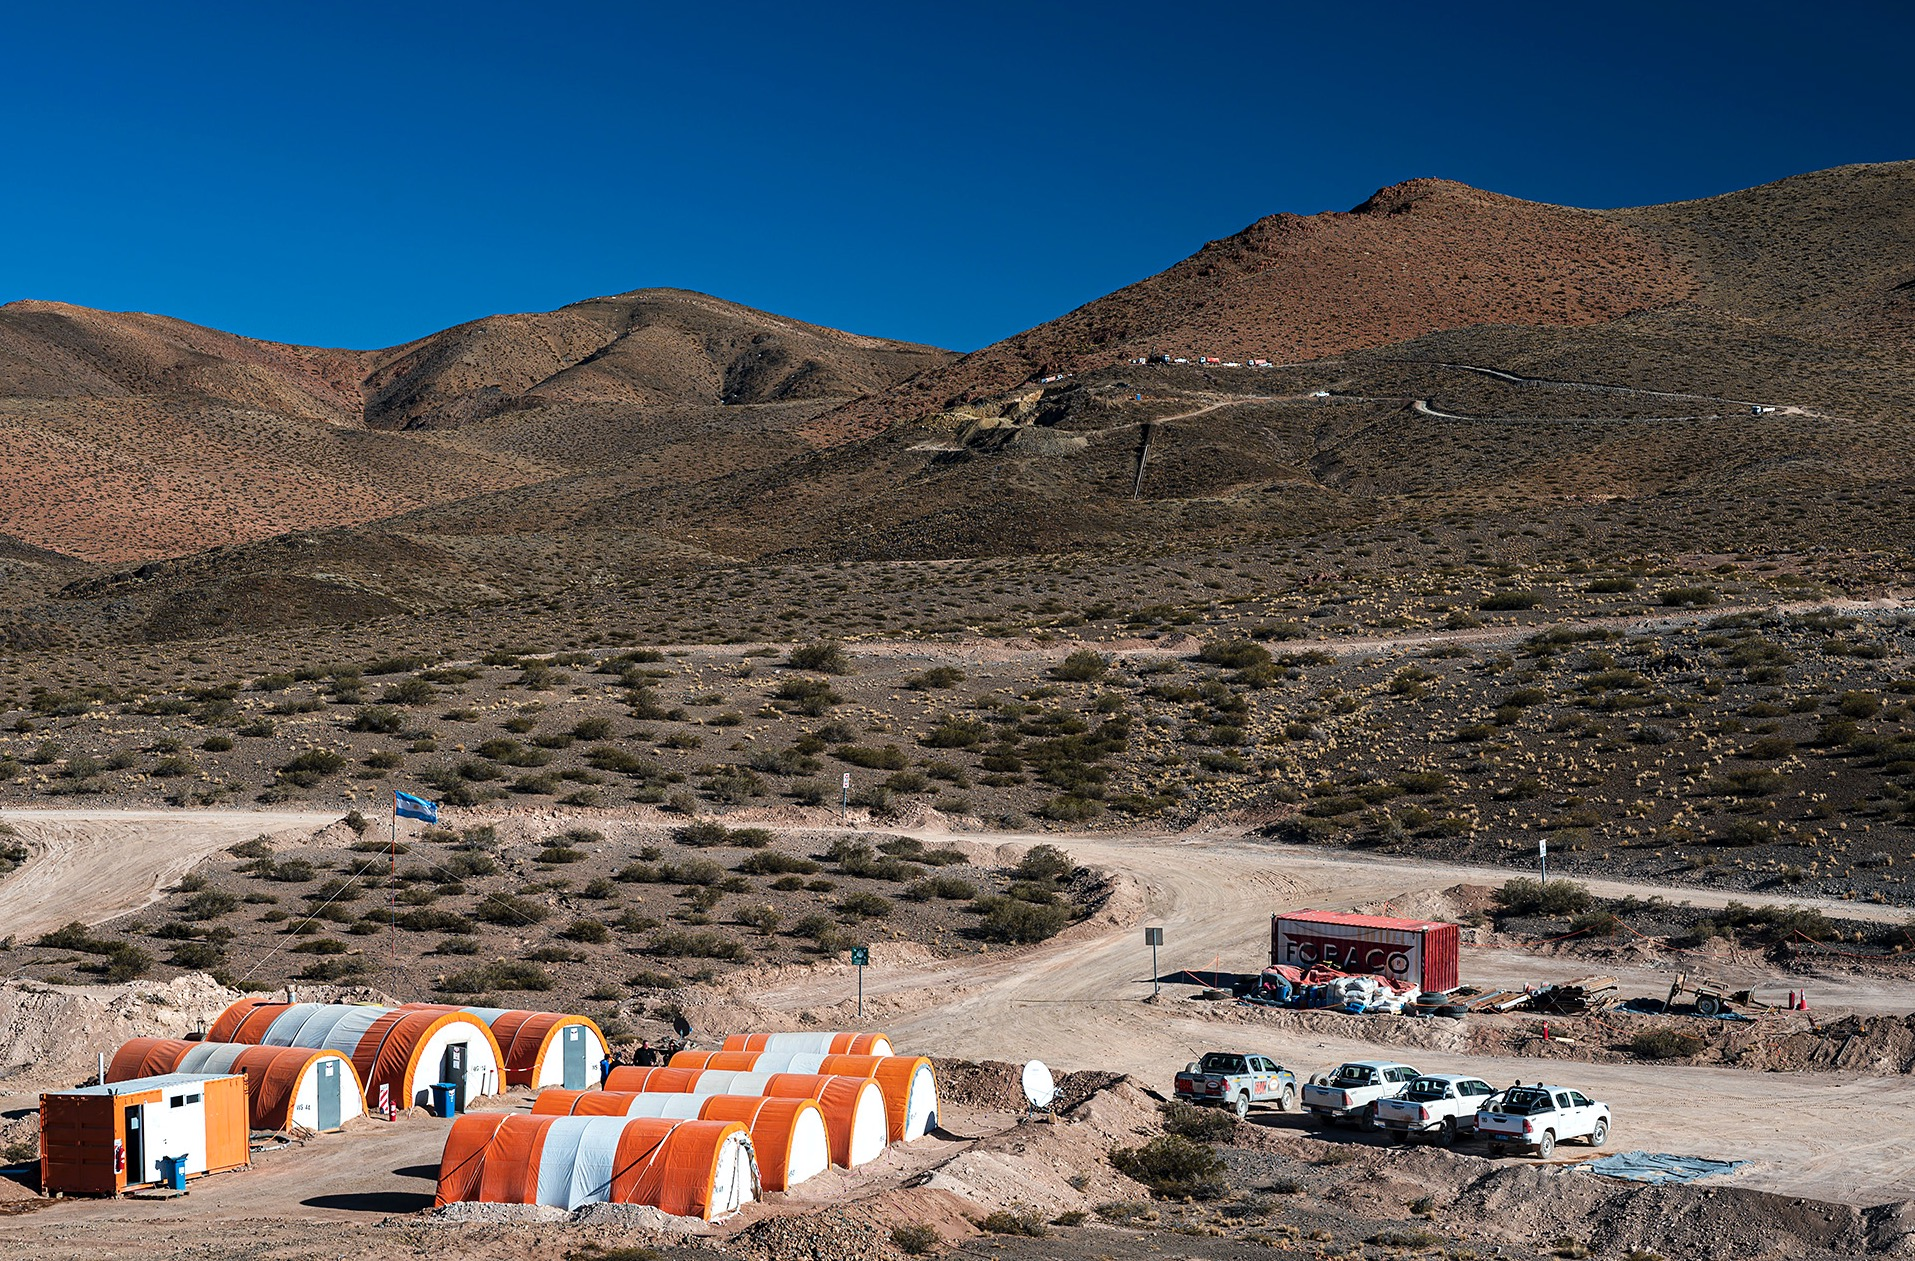 San Francisco Project area: temporary company camp in foreground and drill rigs at the San Francisco del Los Andes breccia pipe in background.